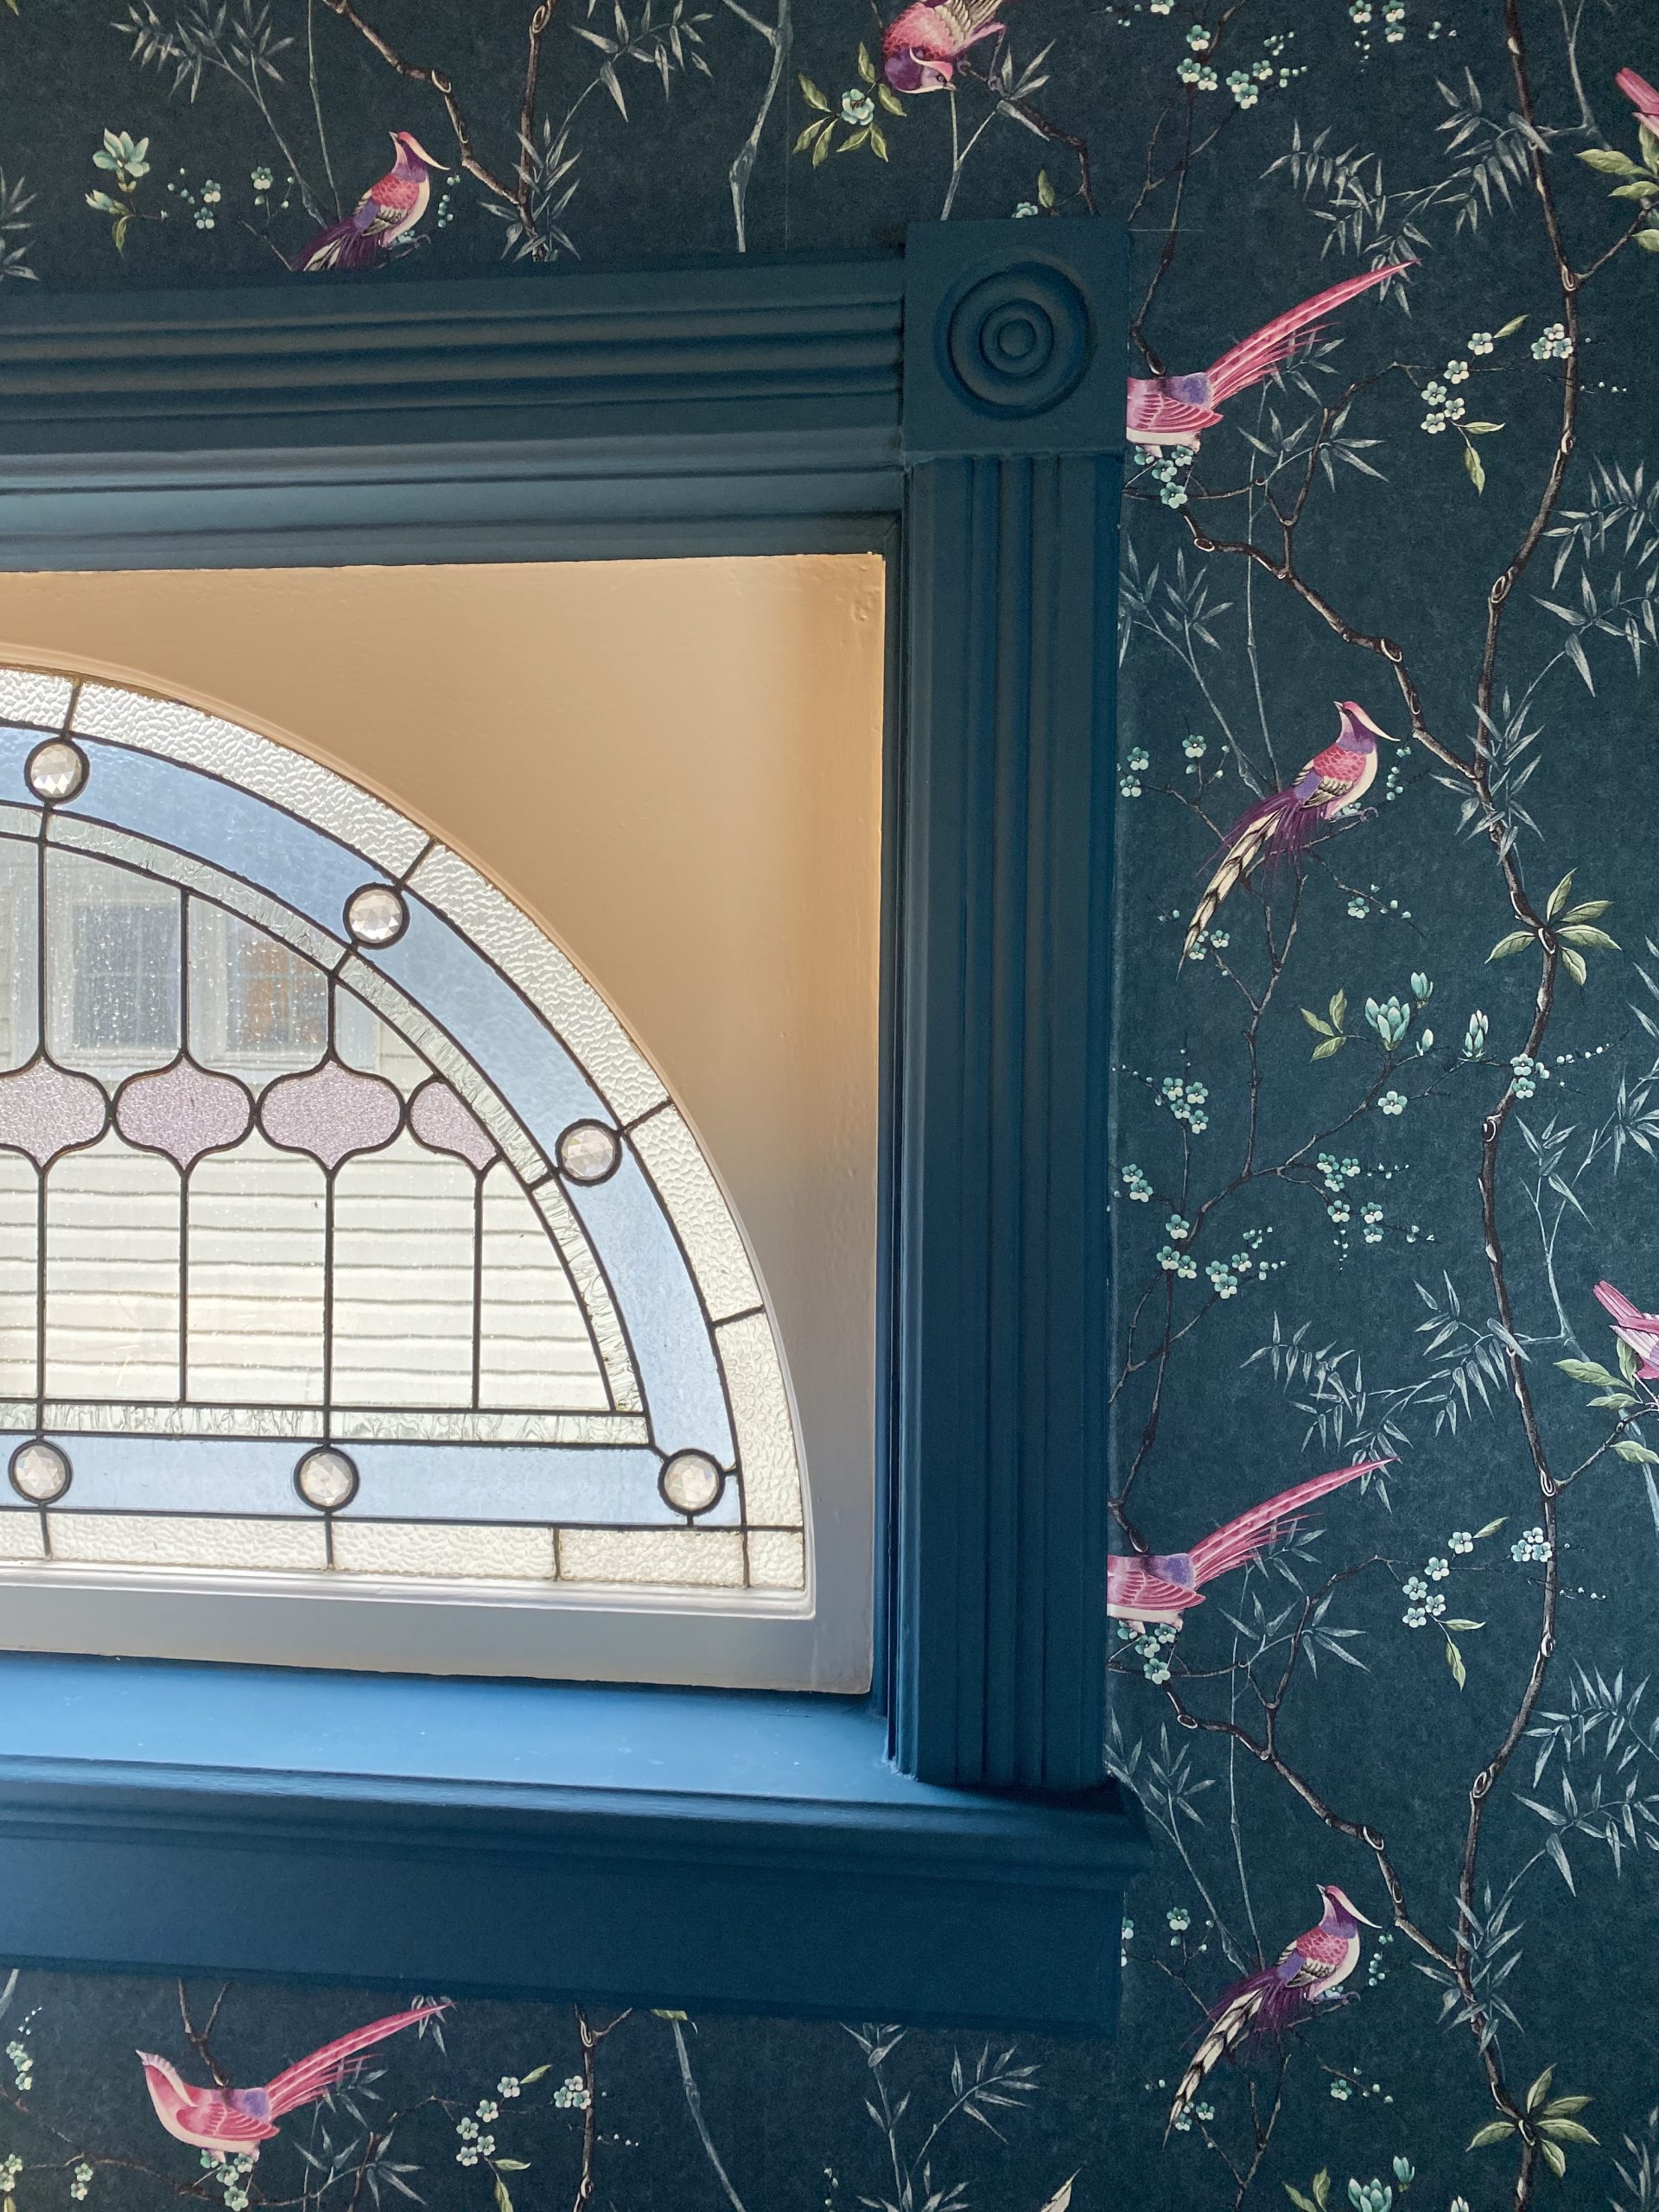 Teal wallpaper and stained glass window inside interior designer Heather Prestanski's victorian Windsor home